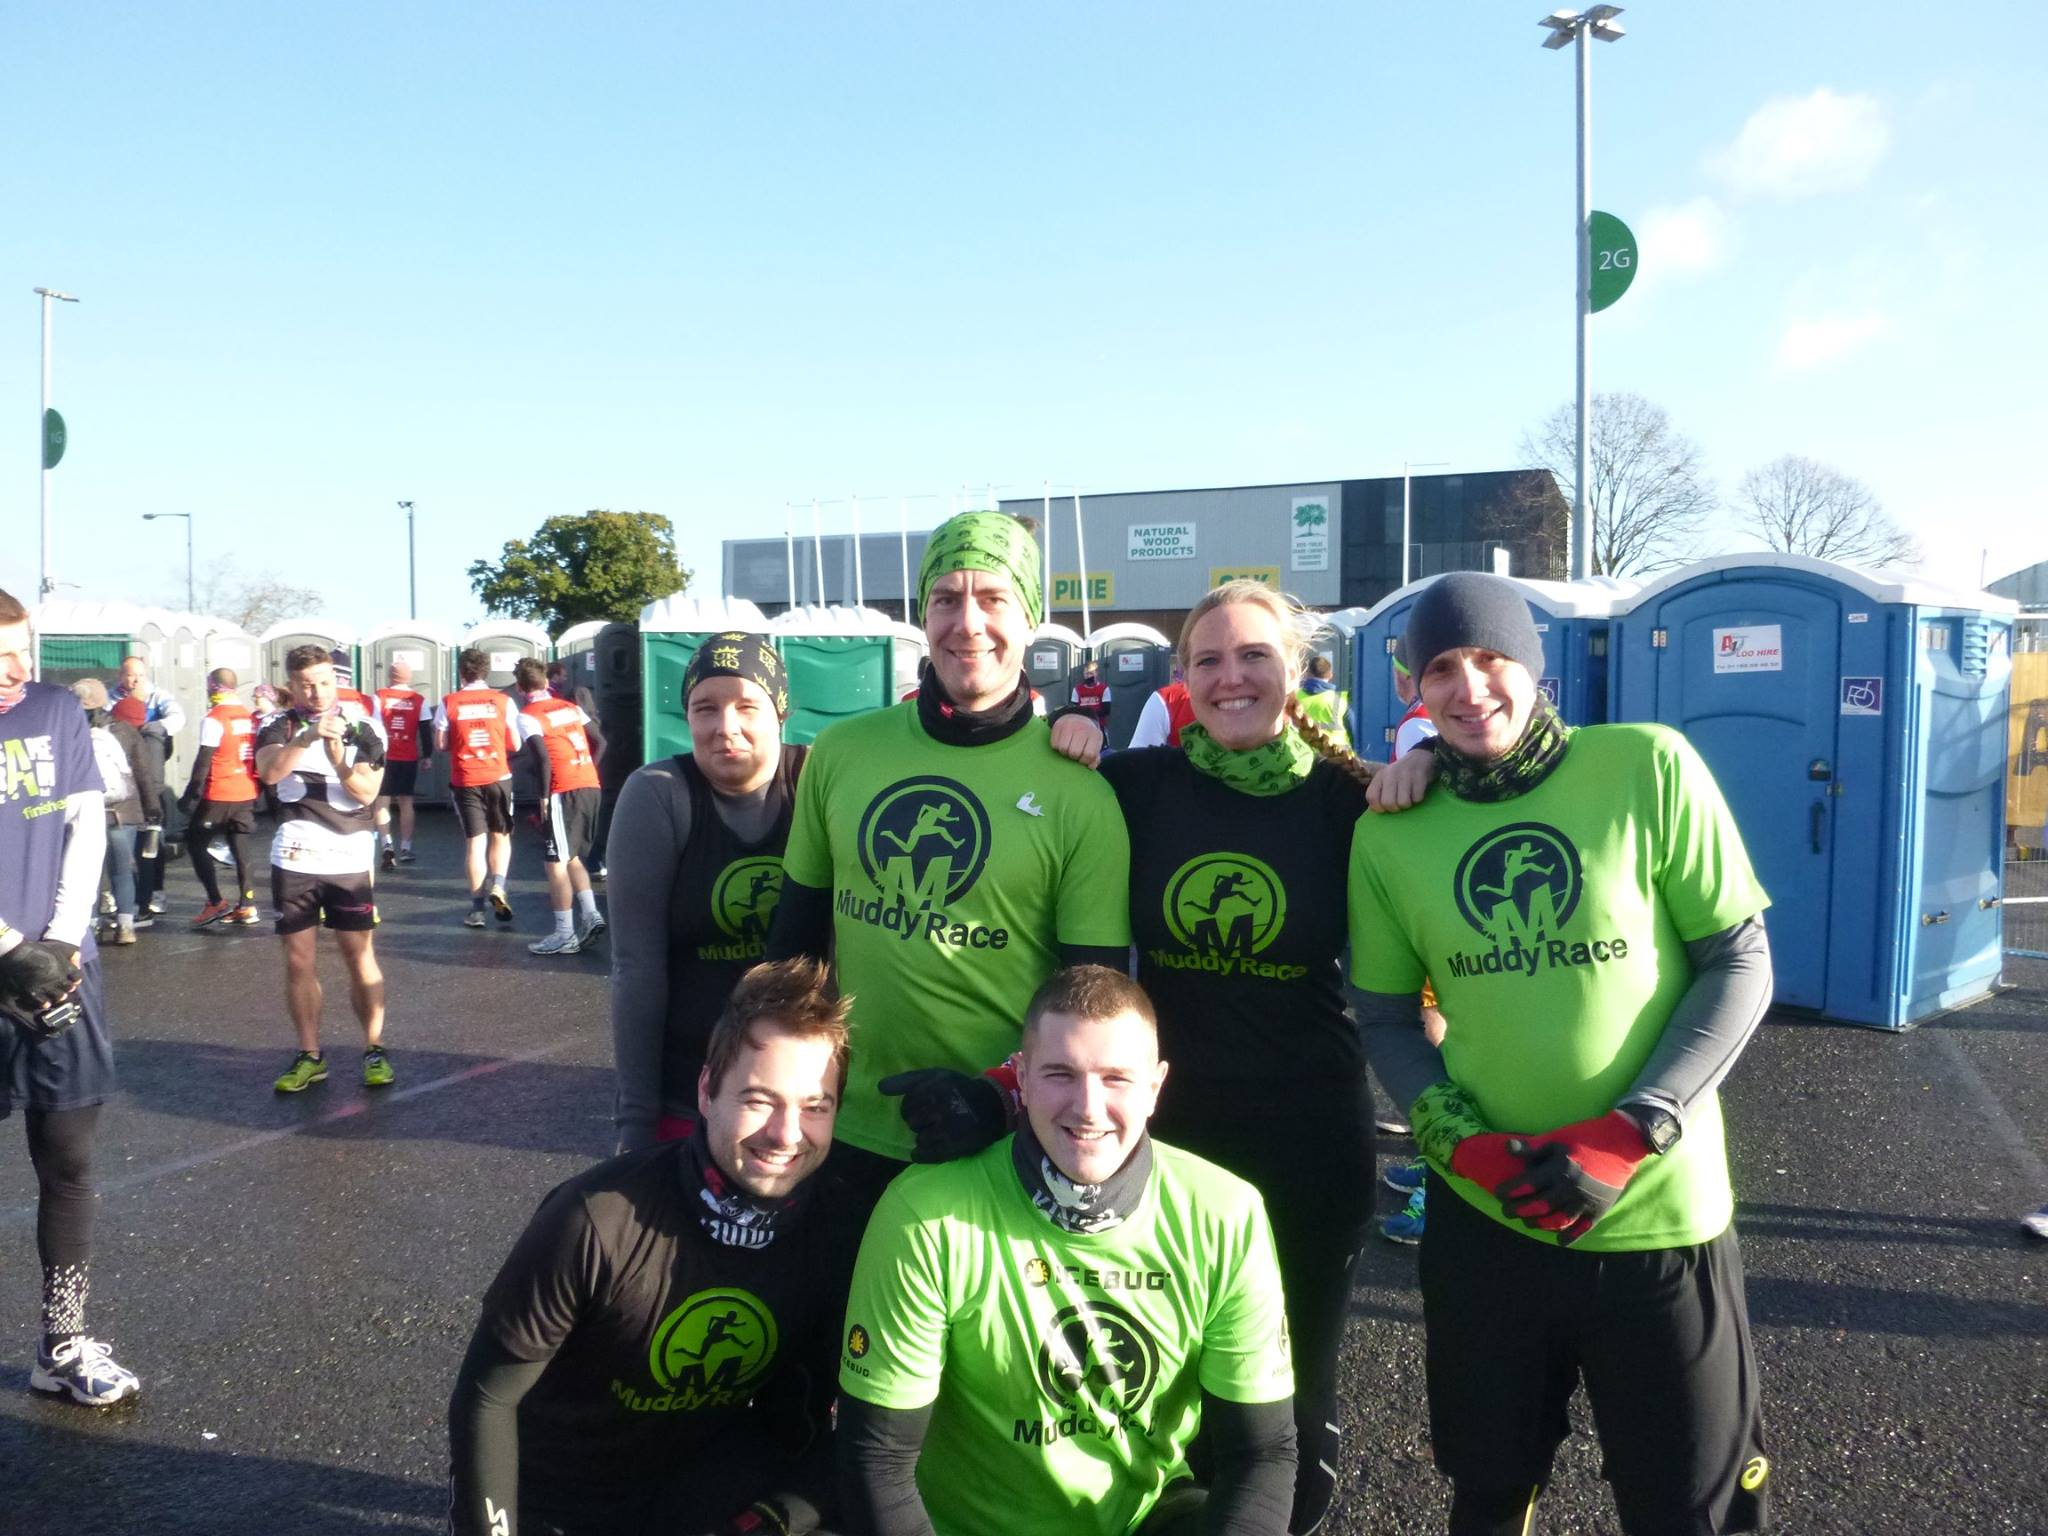 Some of Team Muddy Race before we set off